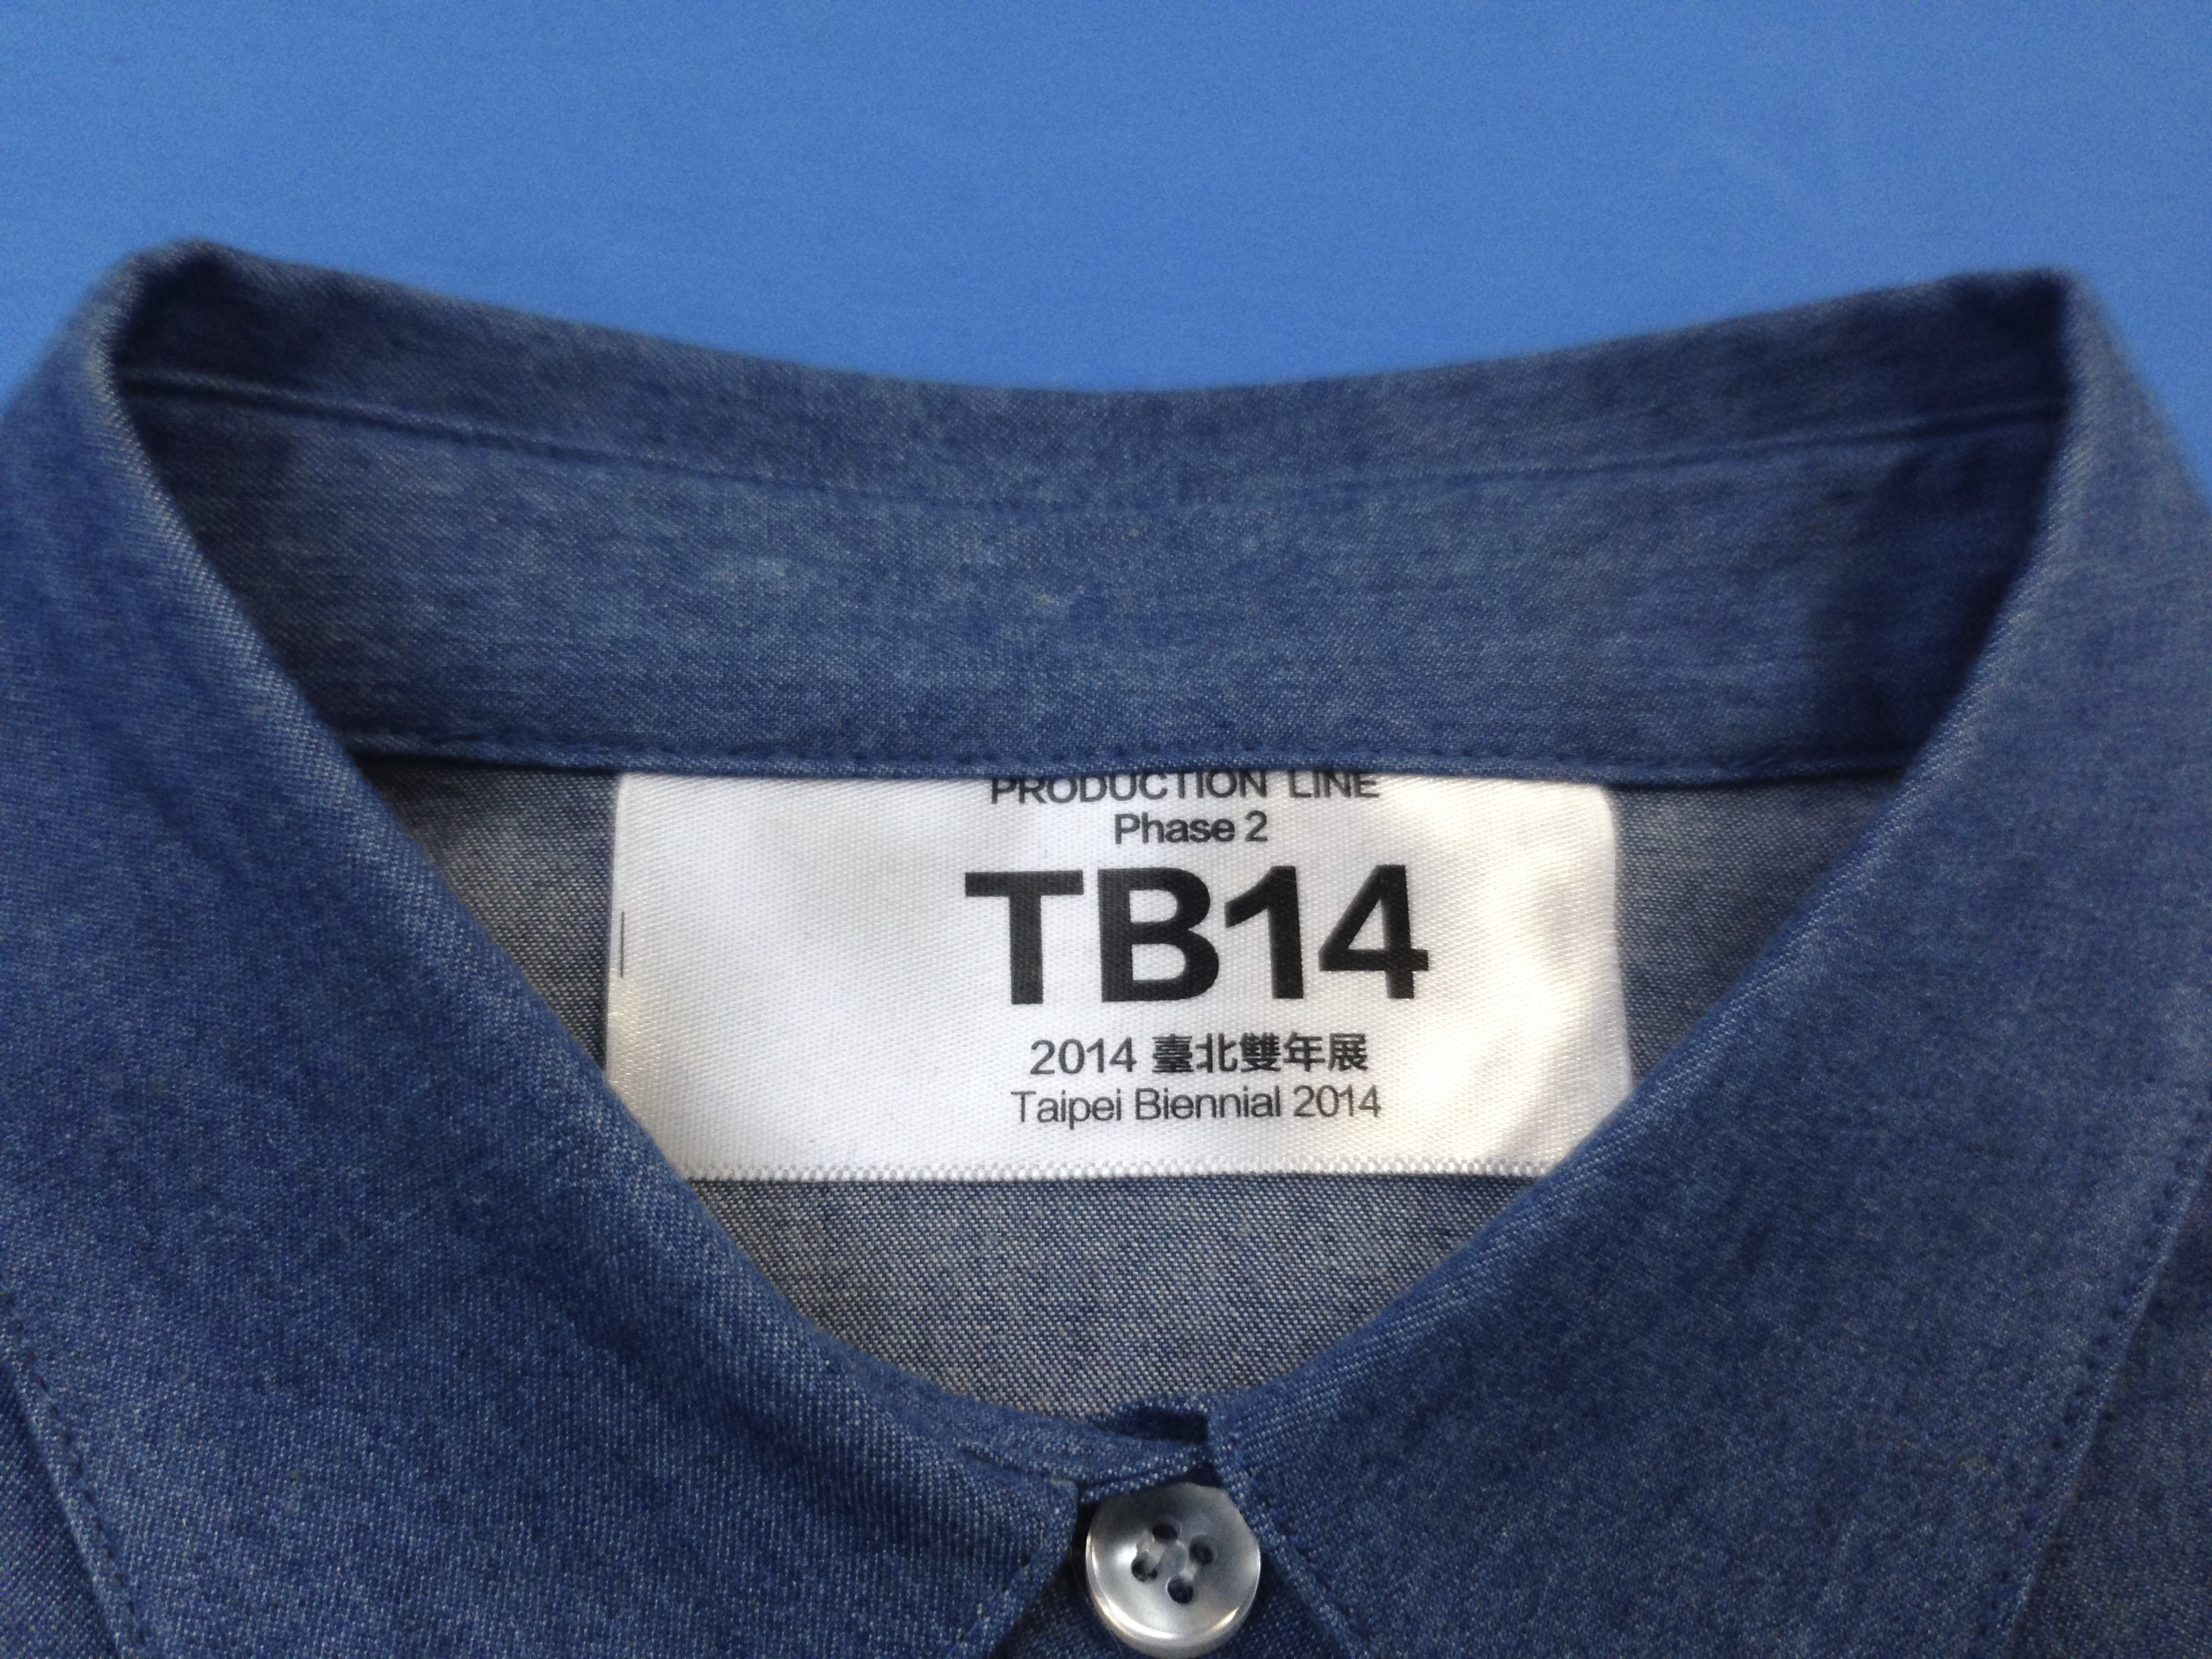 PRODUCTION LINE - MADE IN TAIWAN